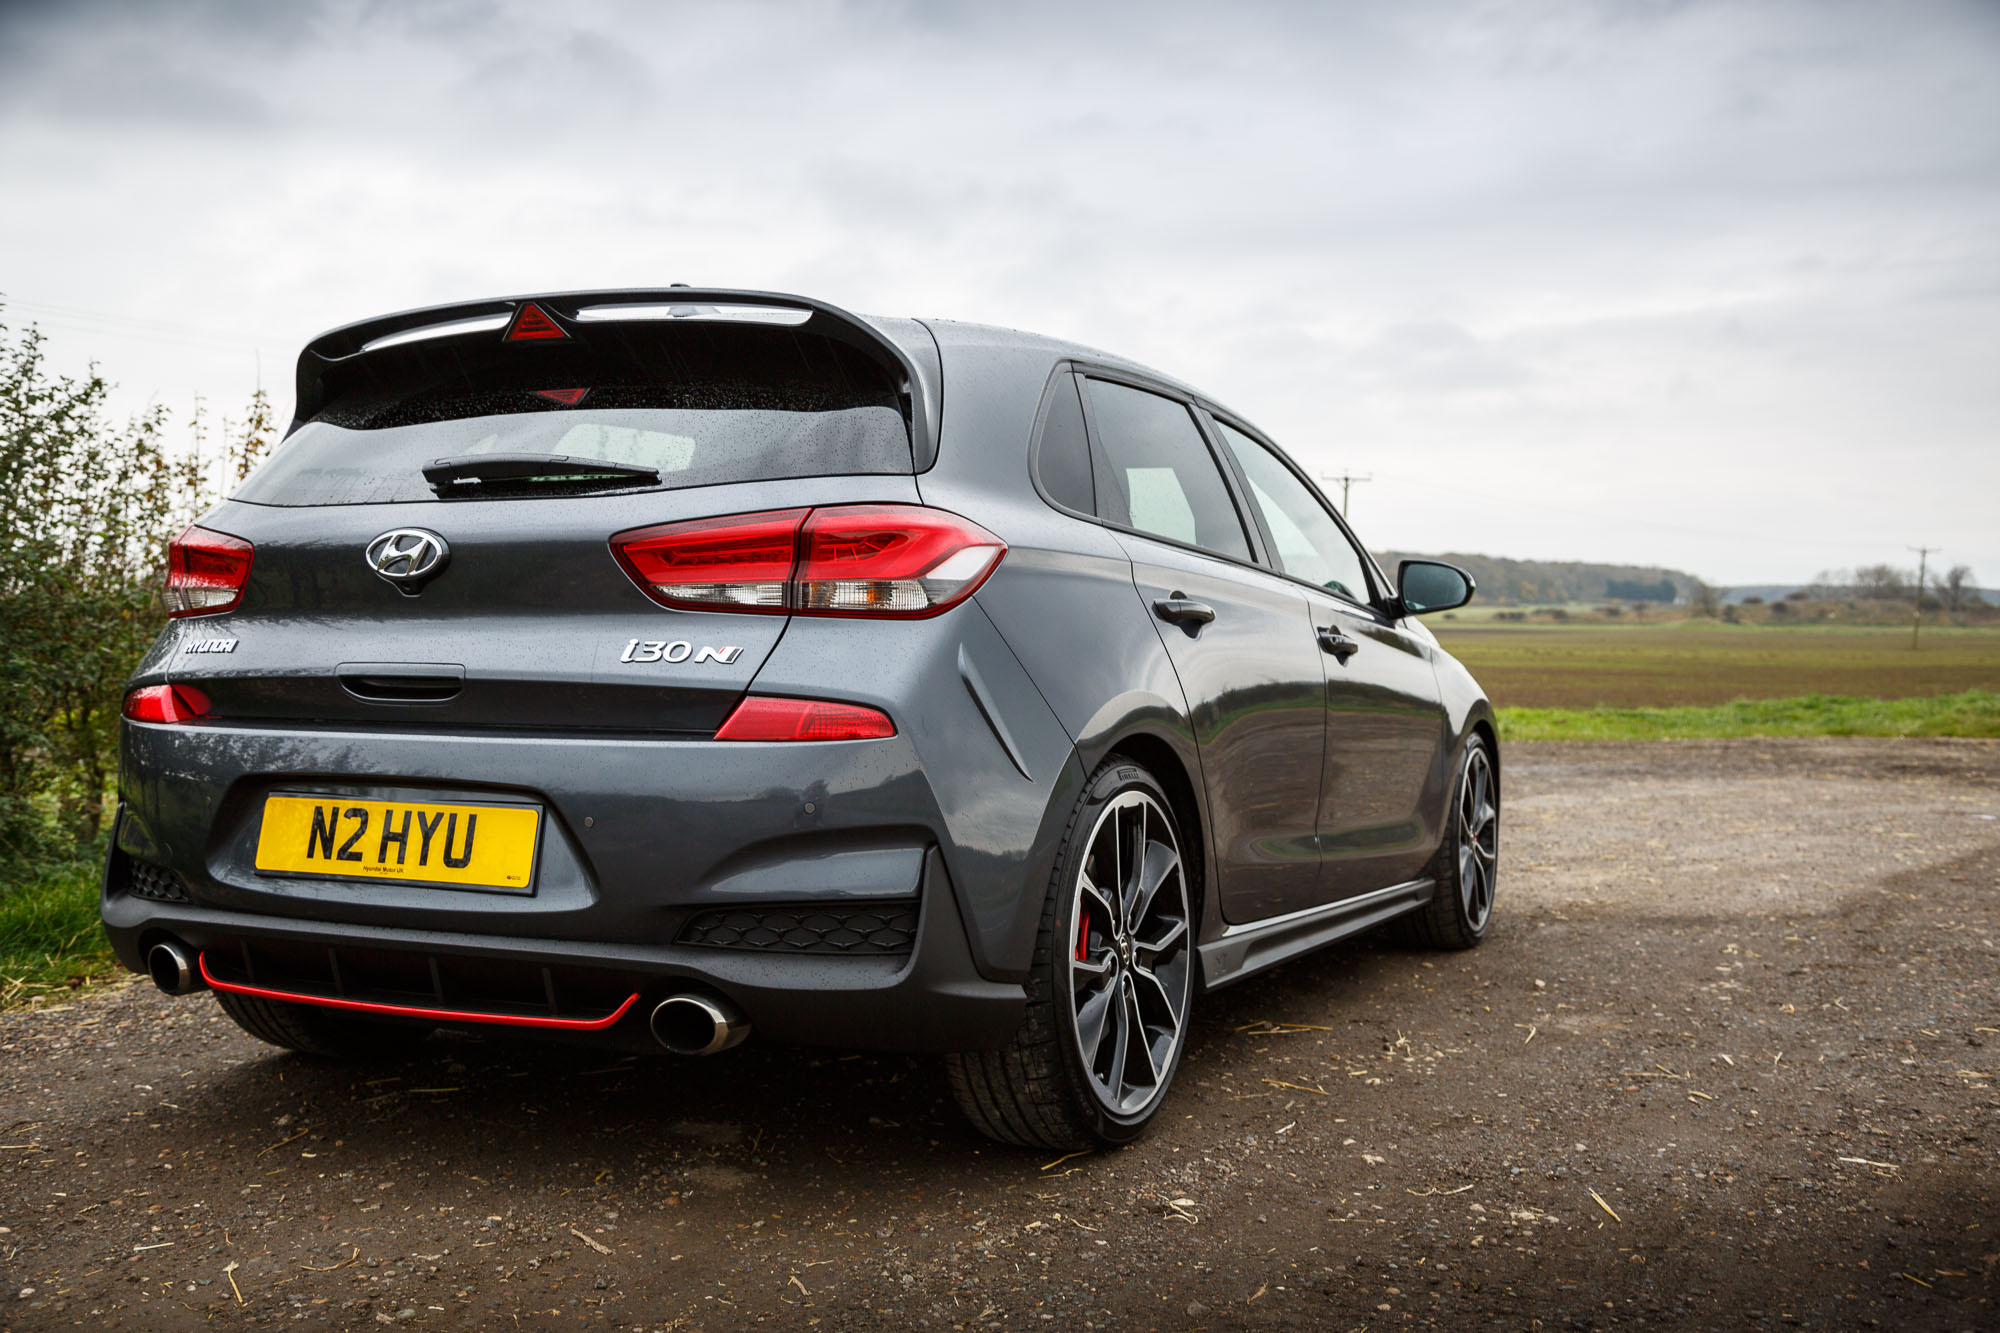 The I30n Is Available In 250 Ps As Default With A Performance Pack Lifting Car To 275